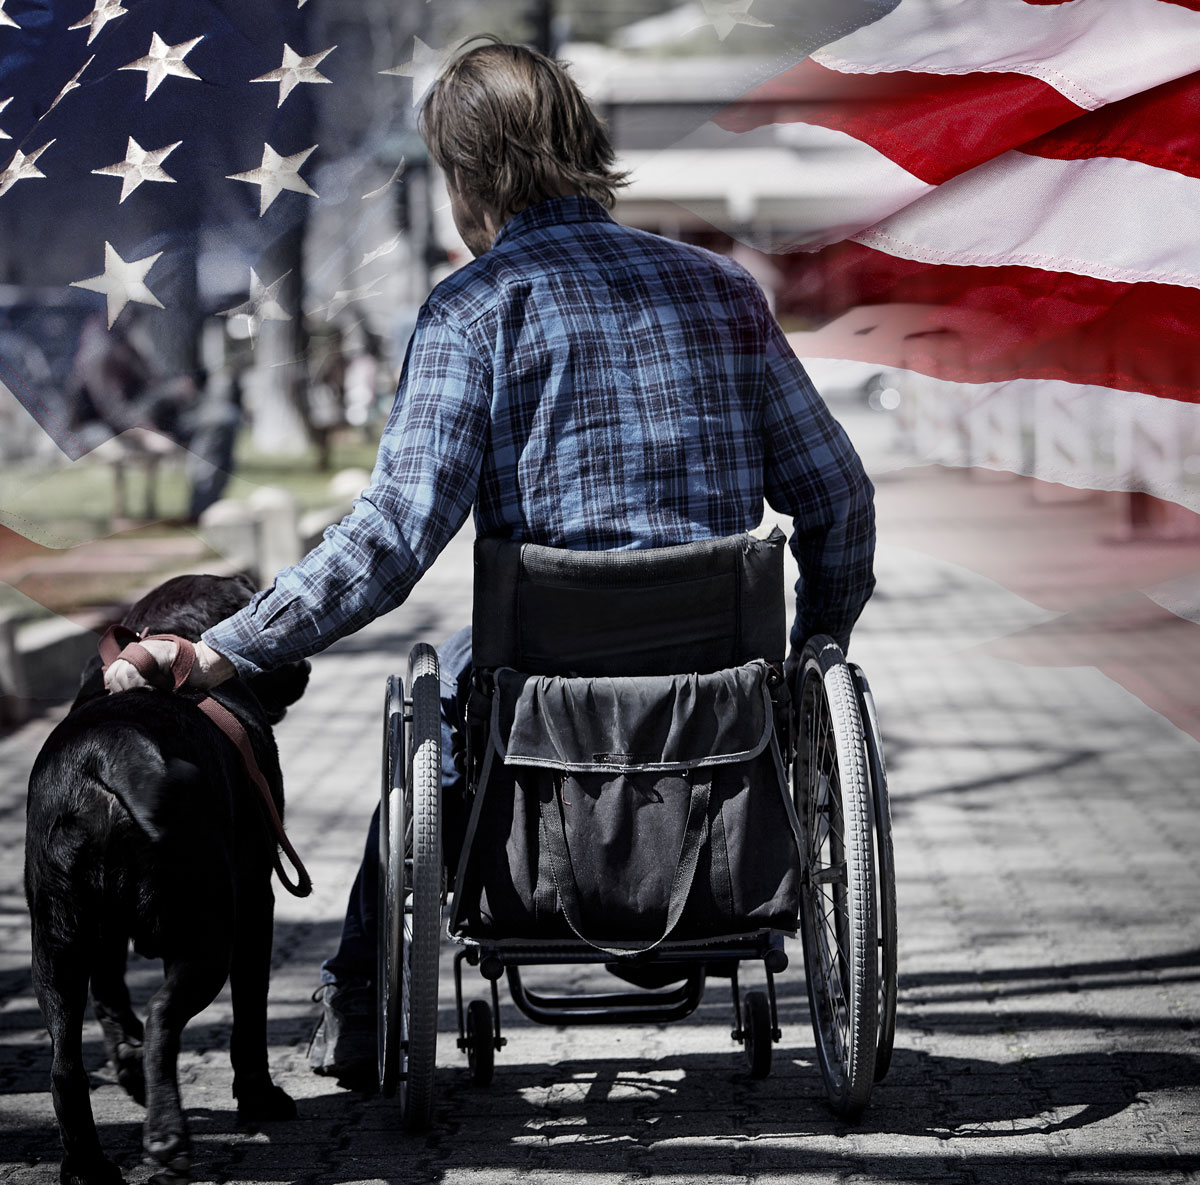 Homeless-Veteran-in-Wheelchair-1200